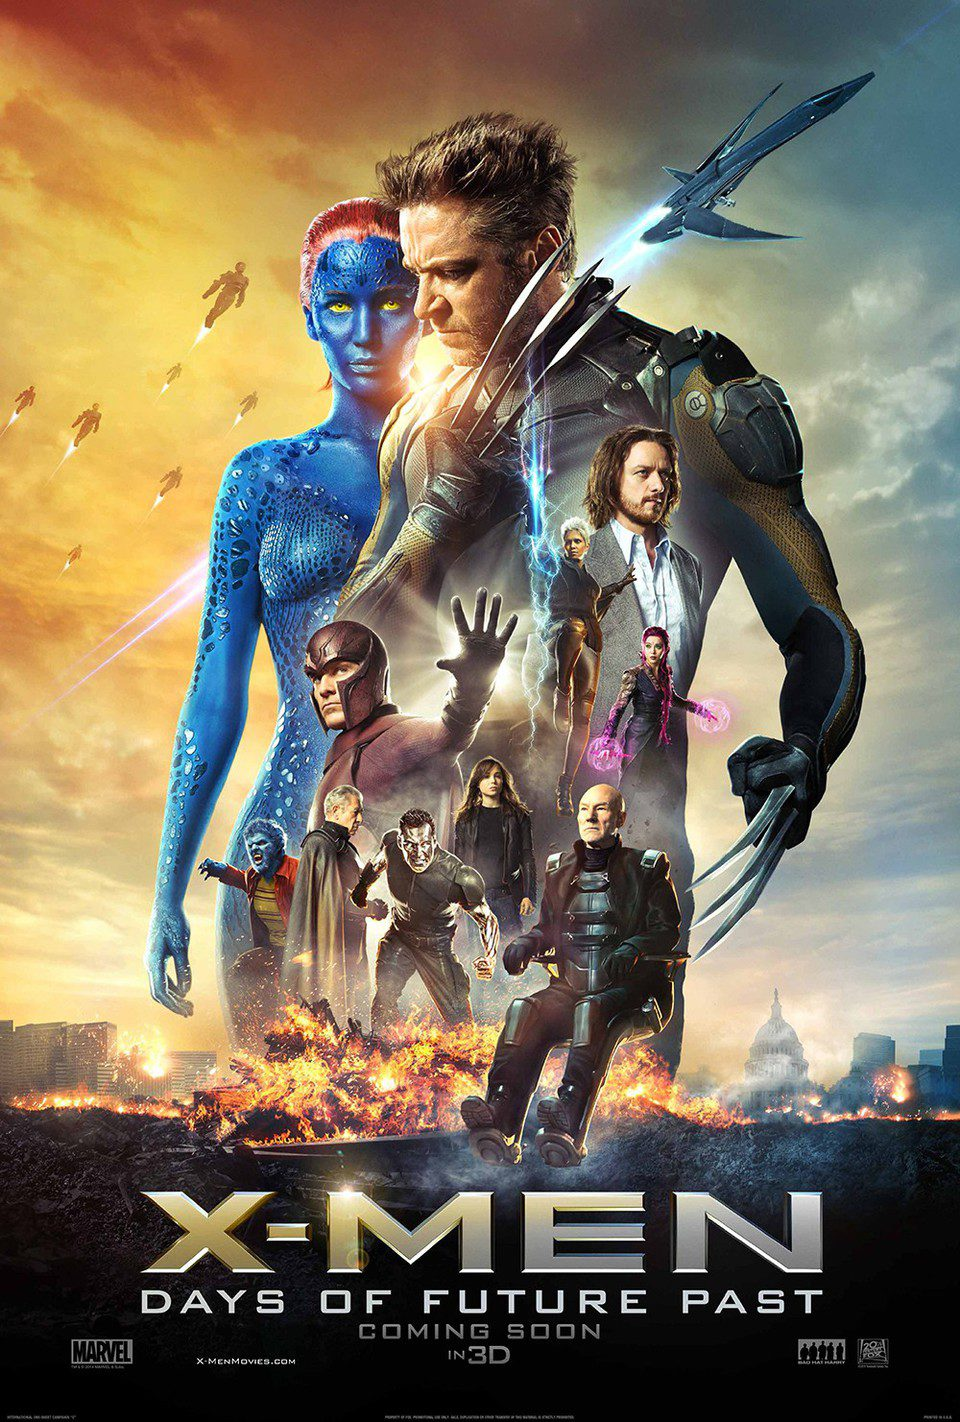 EEUU poster for X-Men: Days of Future Past